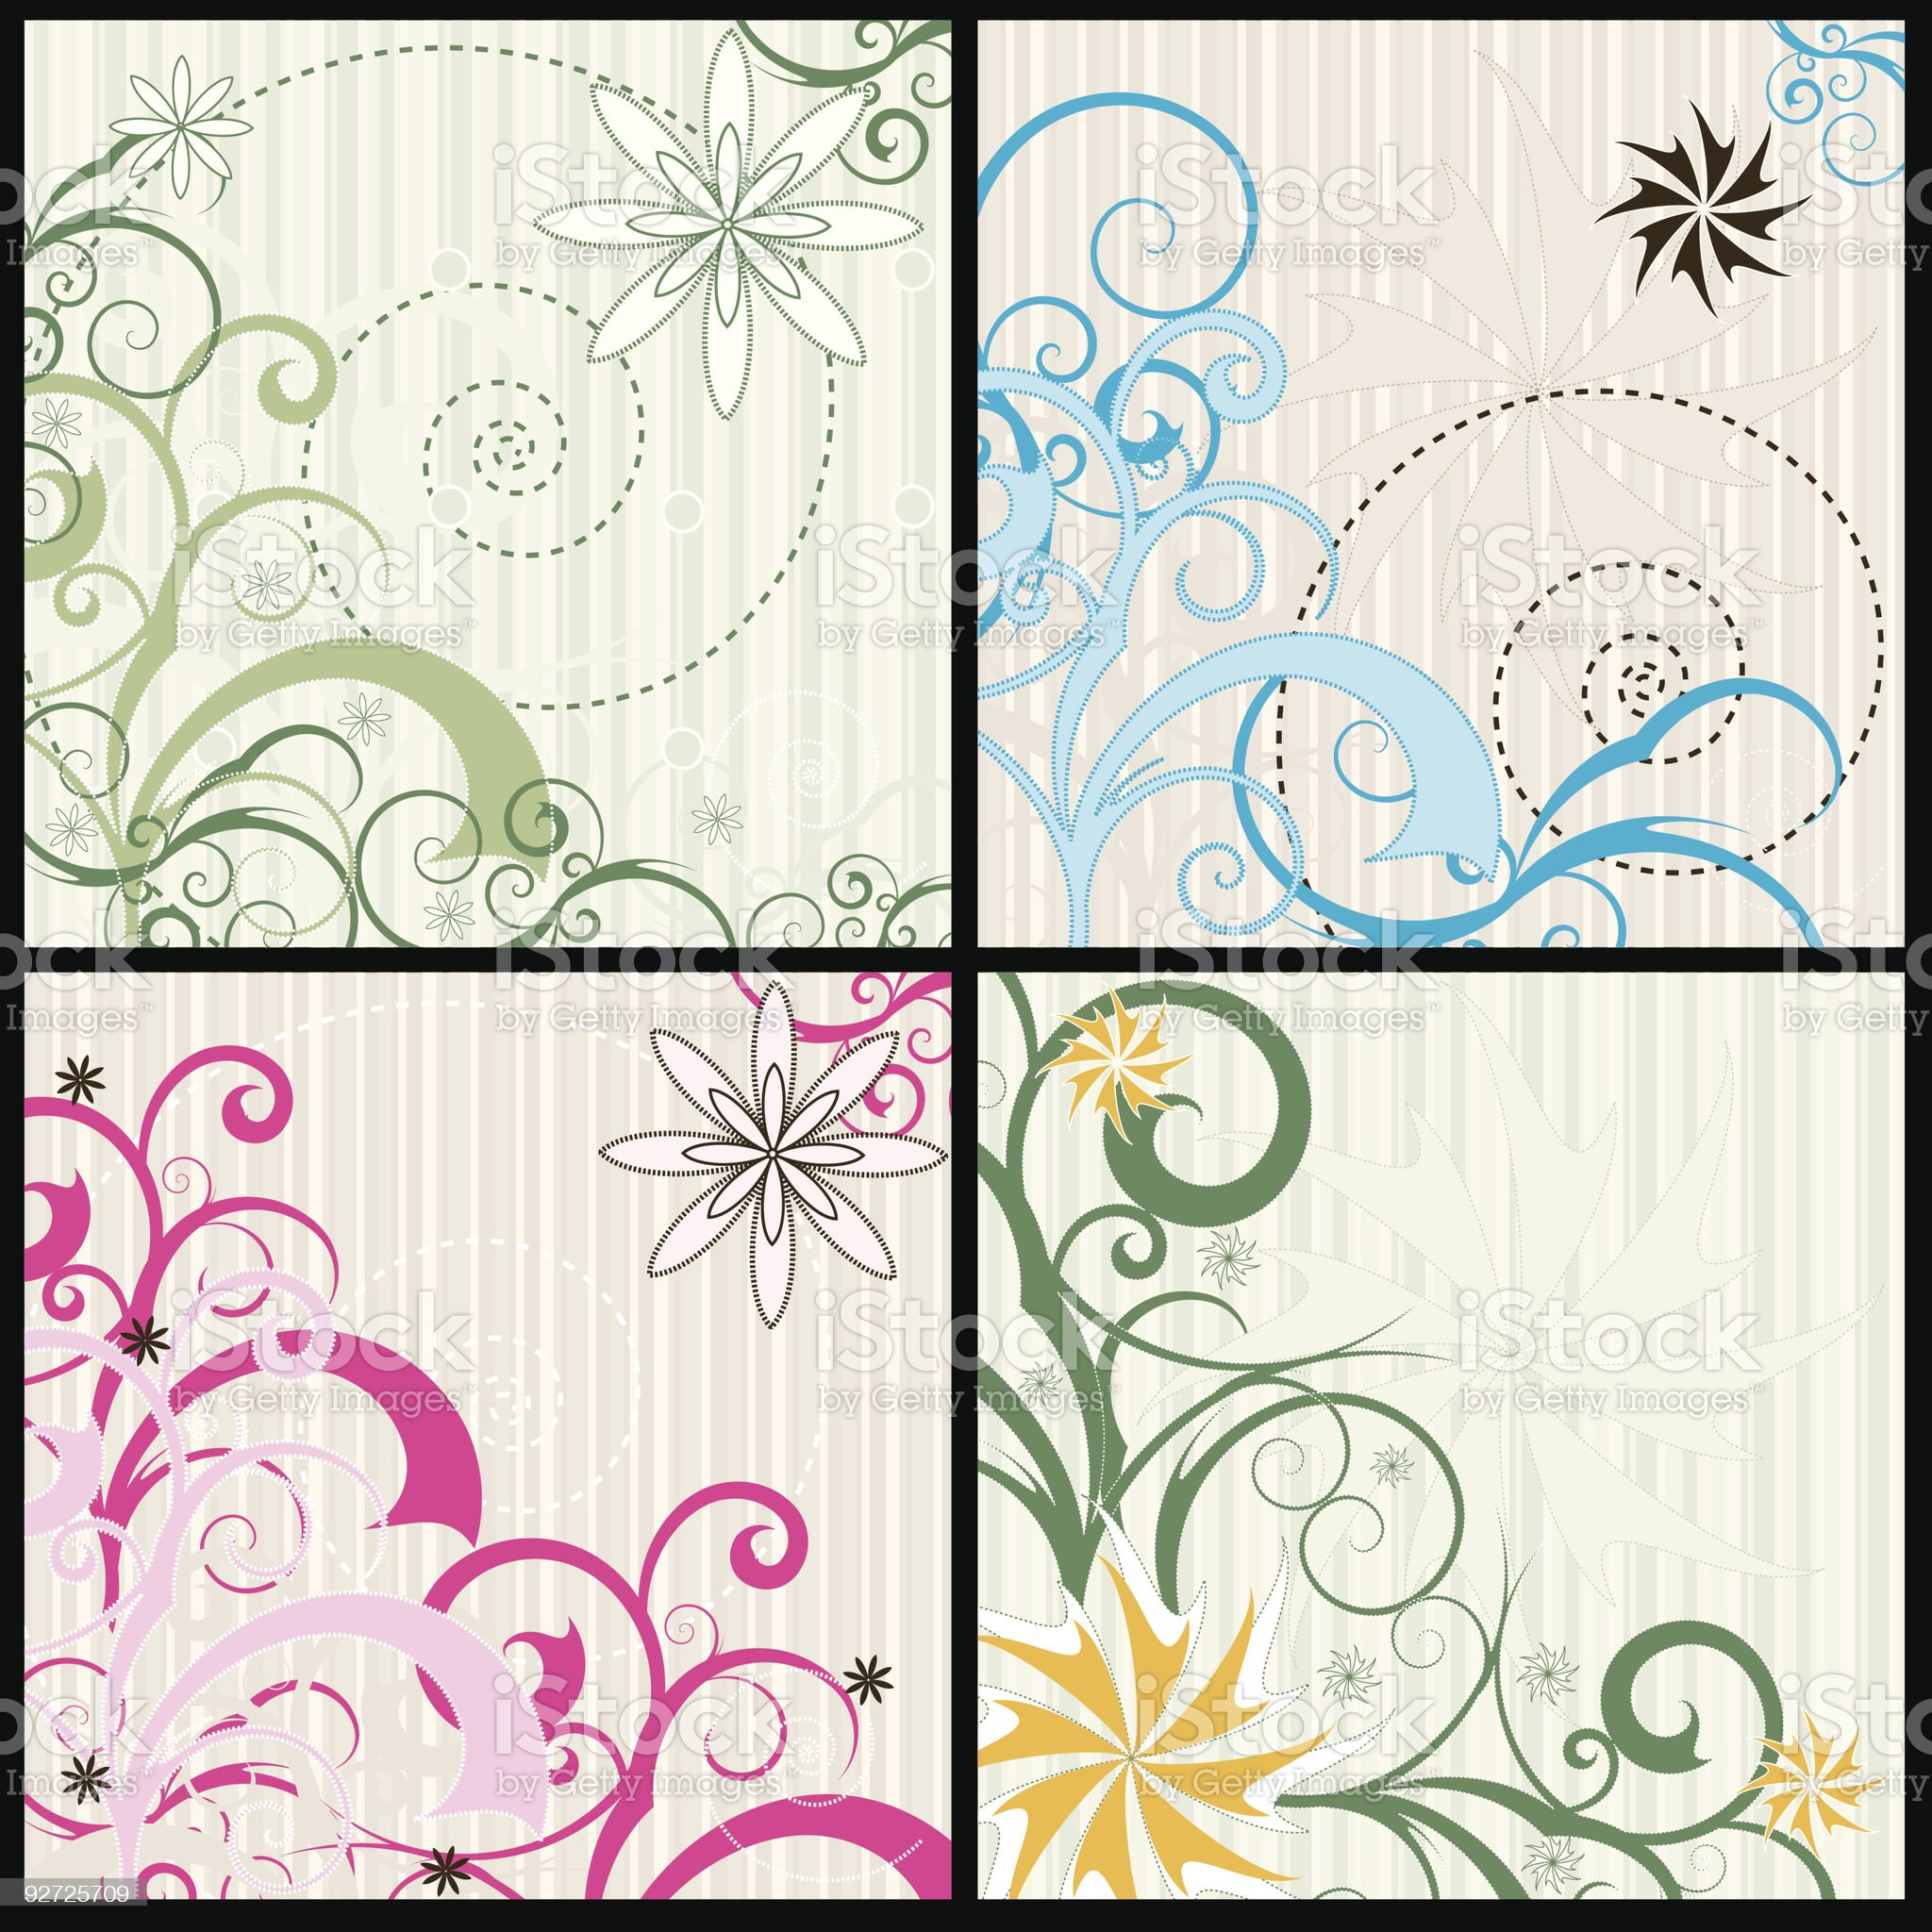 Swirls and Curls royalty-free stock vector art